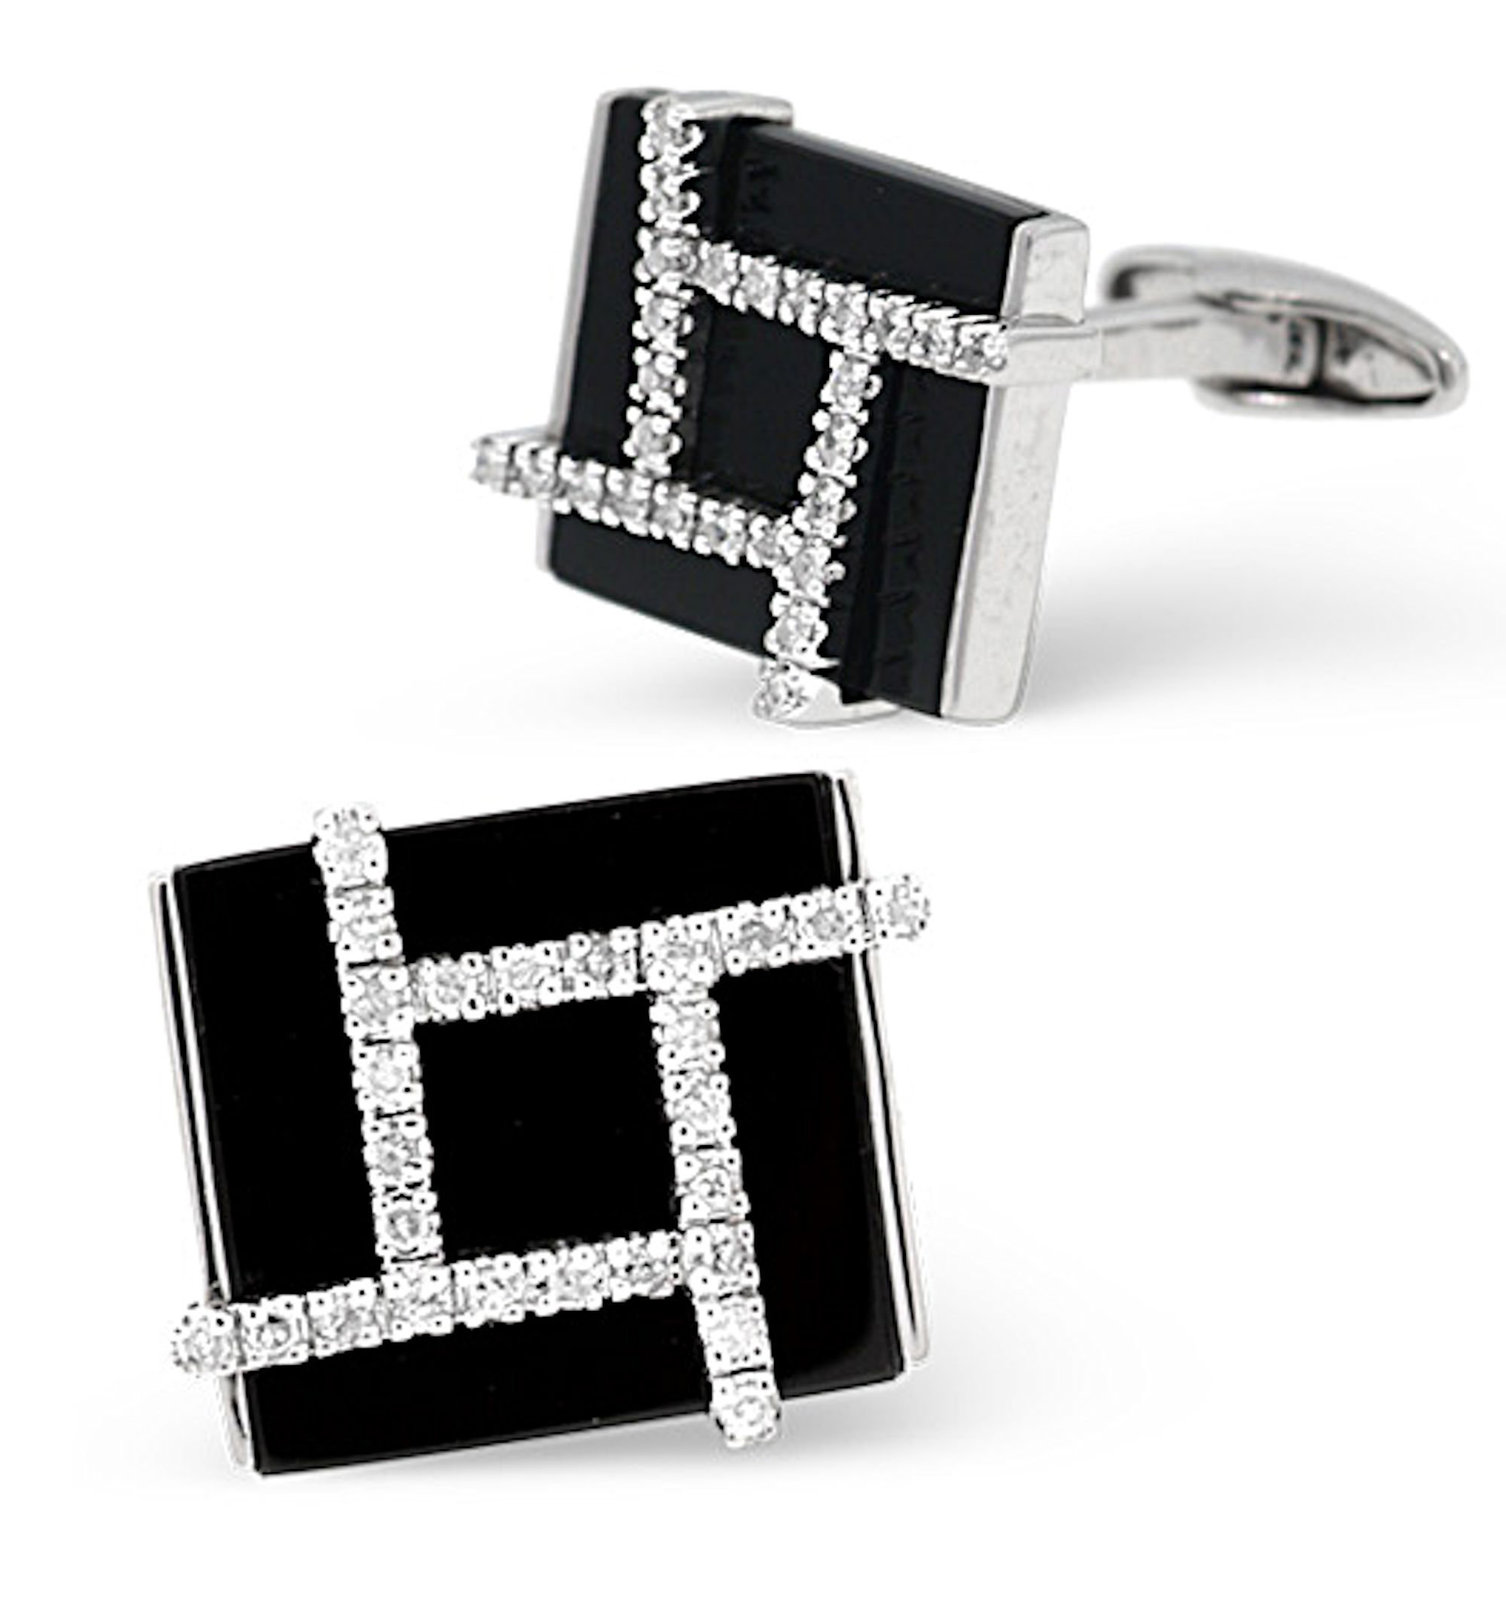 9K White Gold with real Diamonds Cufflinks boxed all cuff links supplied boxed